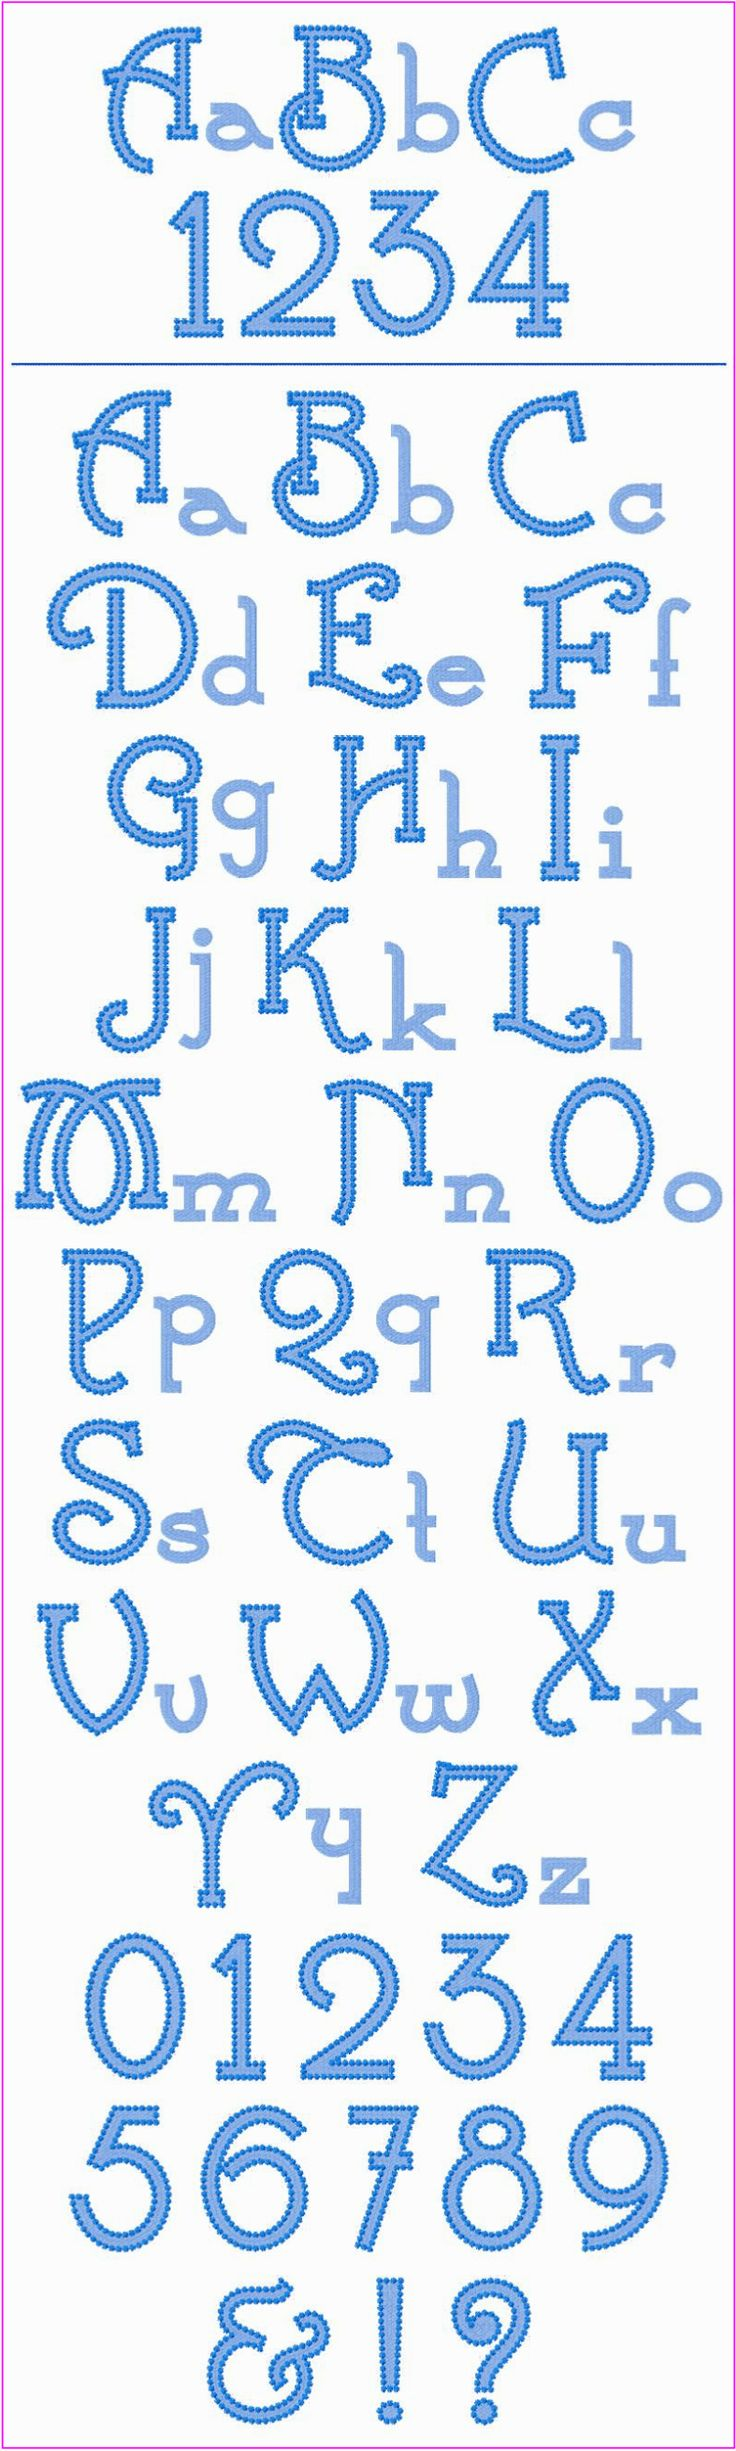 """! ! ! Whimsy Font ! ! ! These are fun, whimsical letters that you'll have fun using on lots of different projects. They're great for towels, totes, tees, hats, table linens, clothing, etc. You get upper case, lower case and numbers. The upper case is 3.75"""" tall, and the lower case is between 1.25"""" & 2.75"""" tall."""